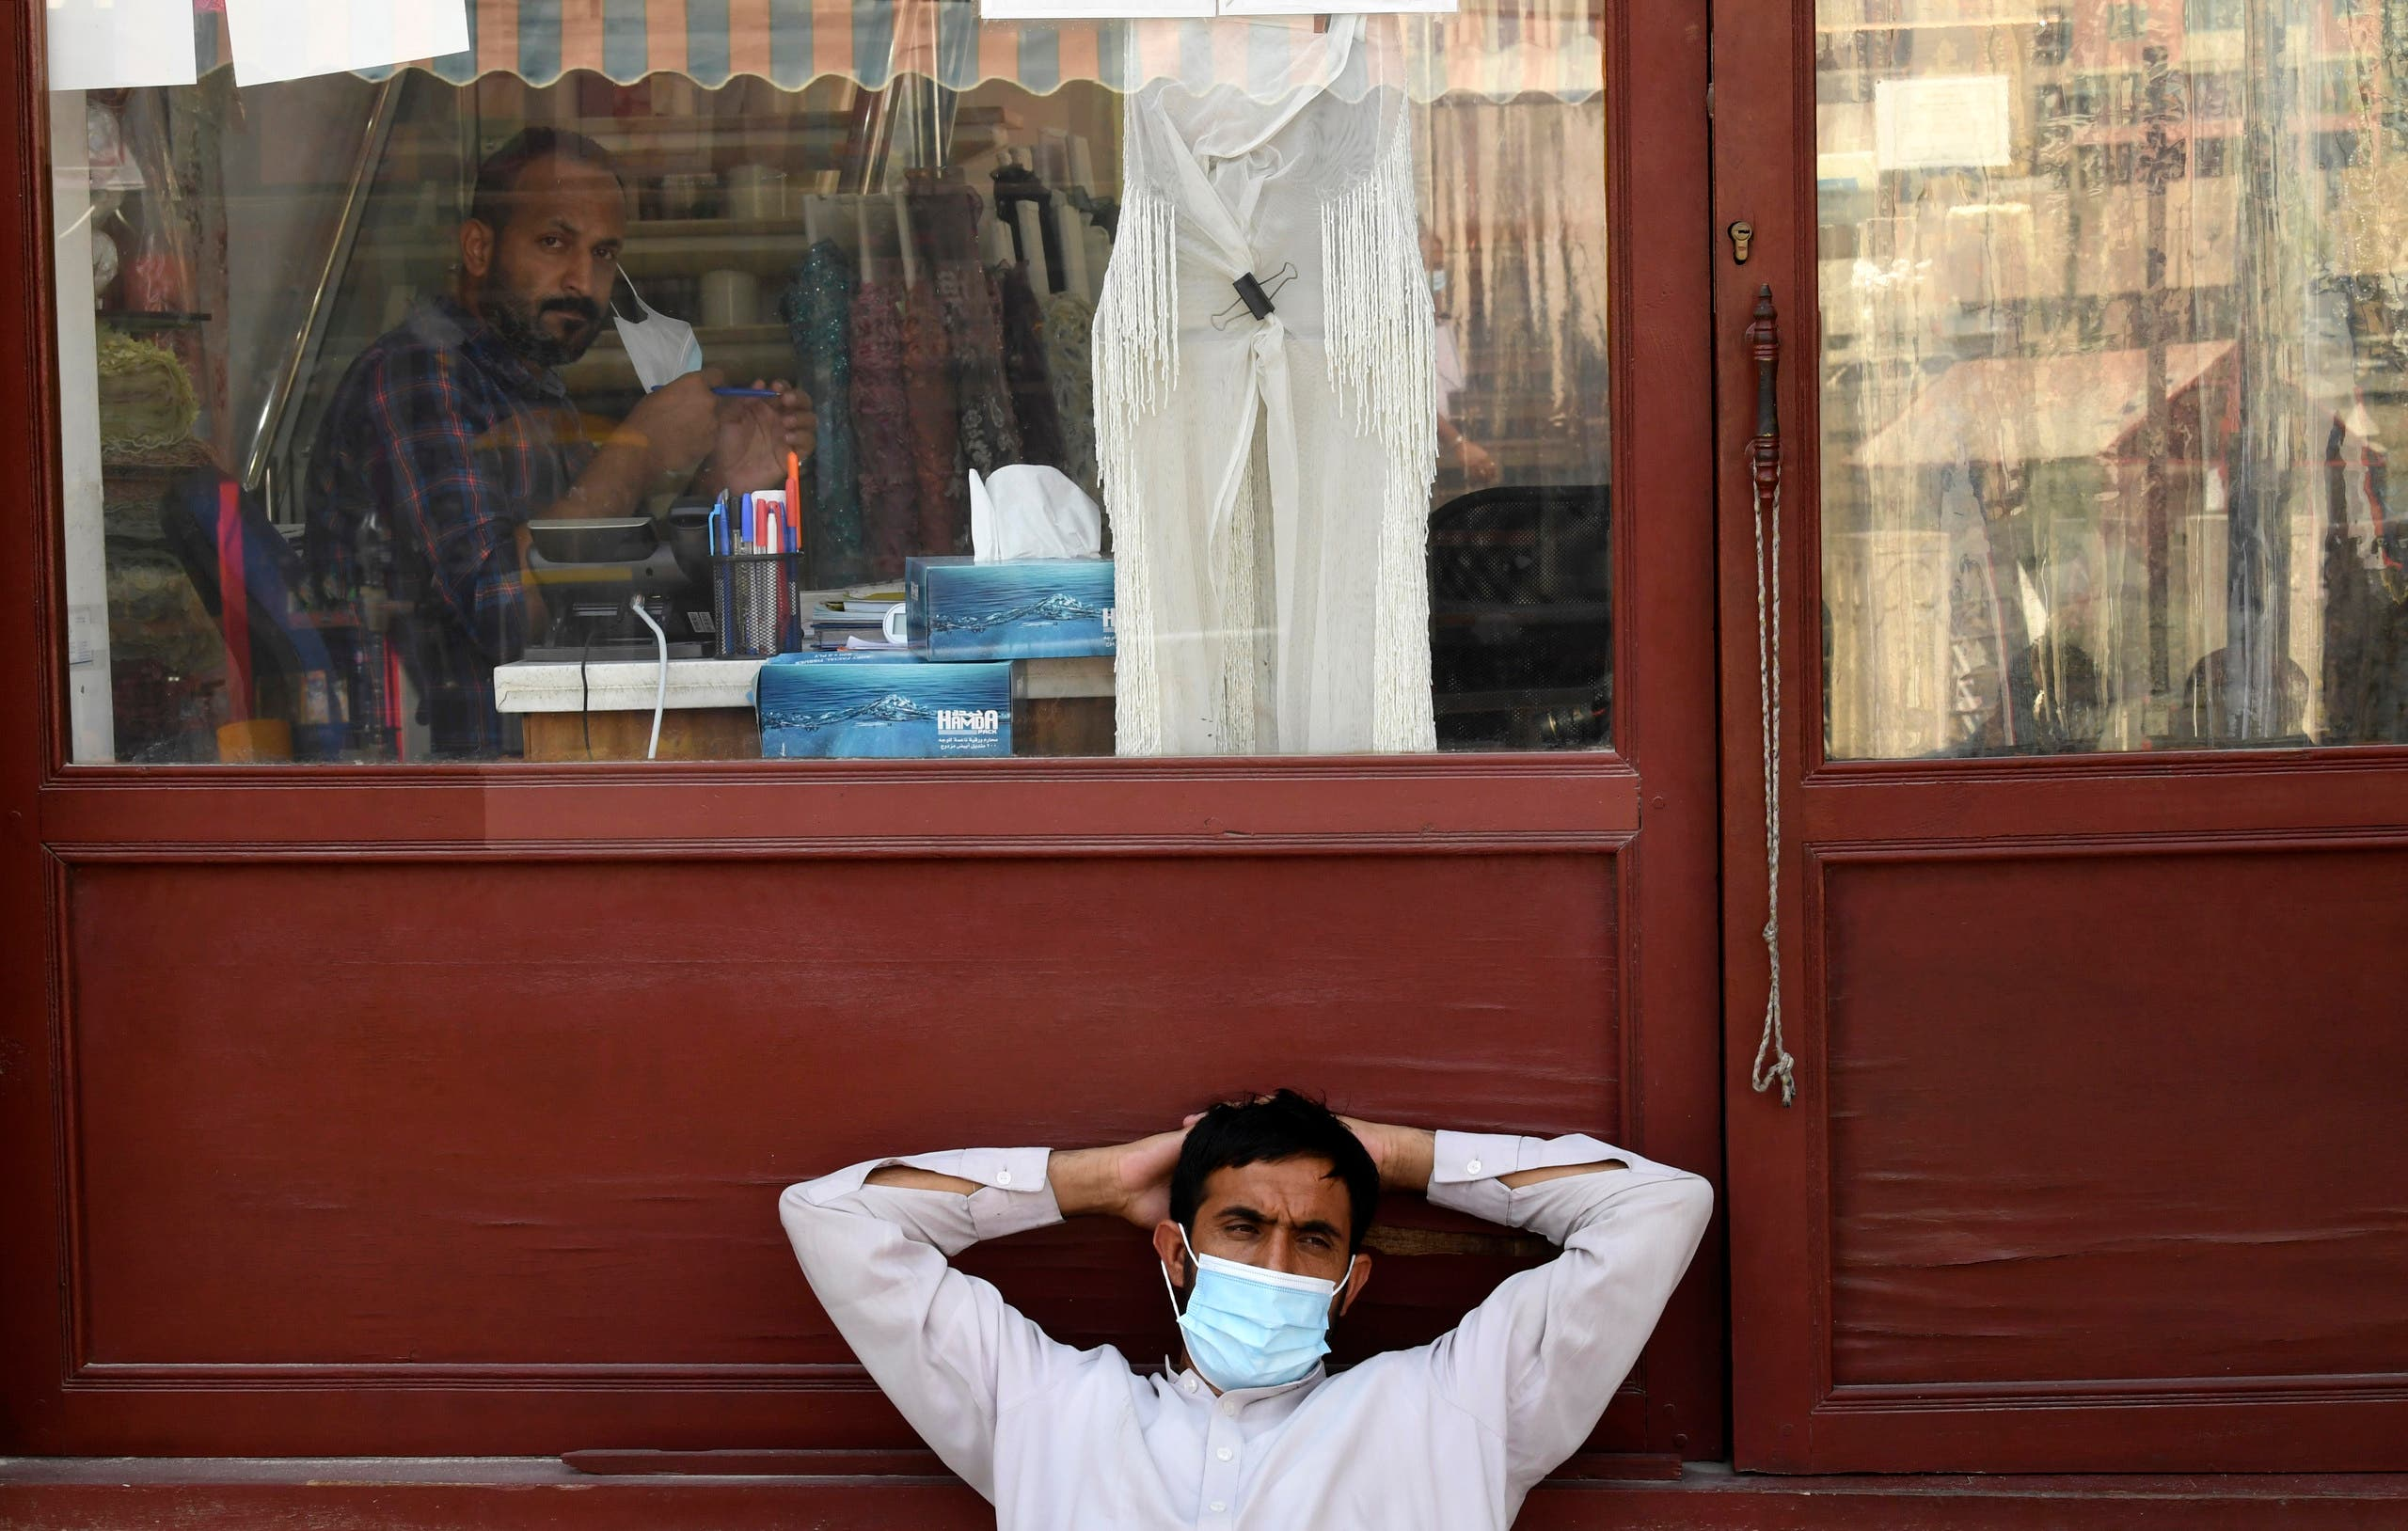 A man sits in front of a tailor's shop at the Deira Souk in the Emirati city of Dubai on September 30, 2020. (AFP)